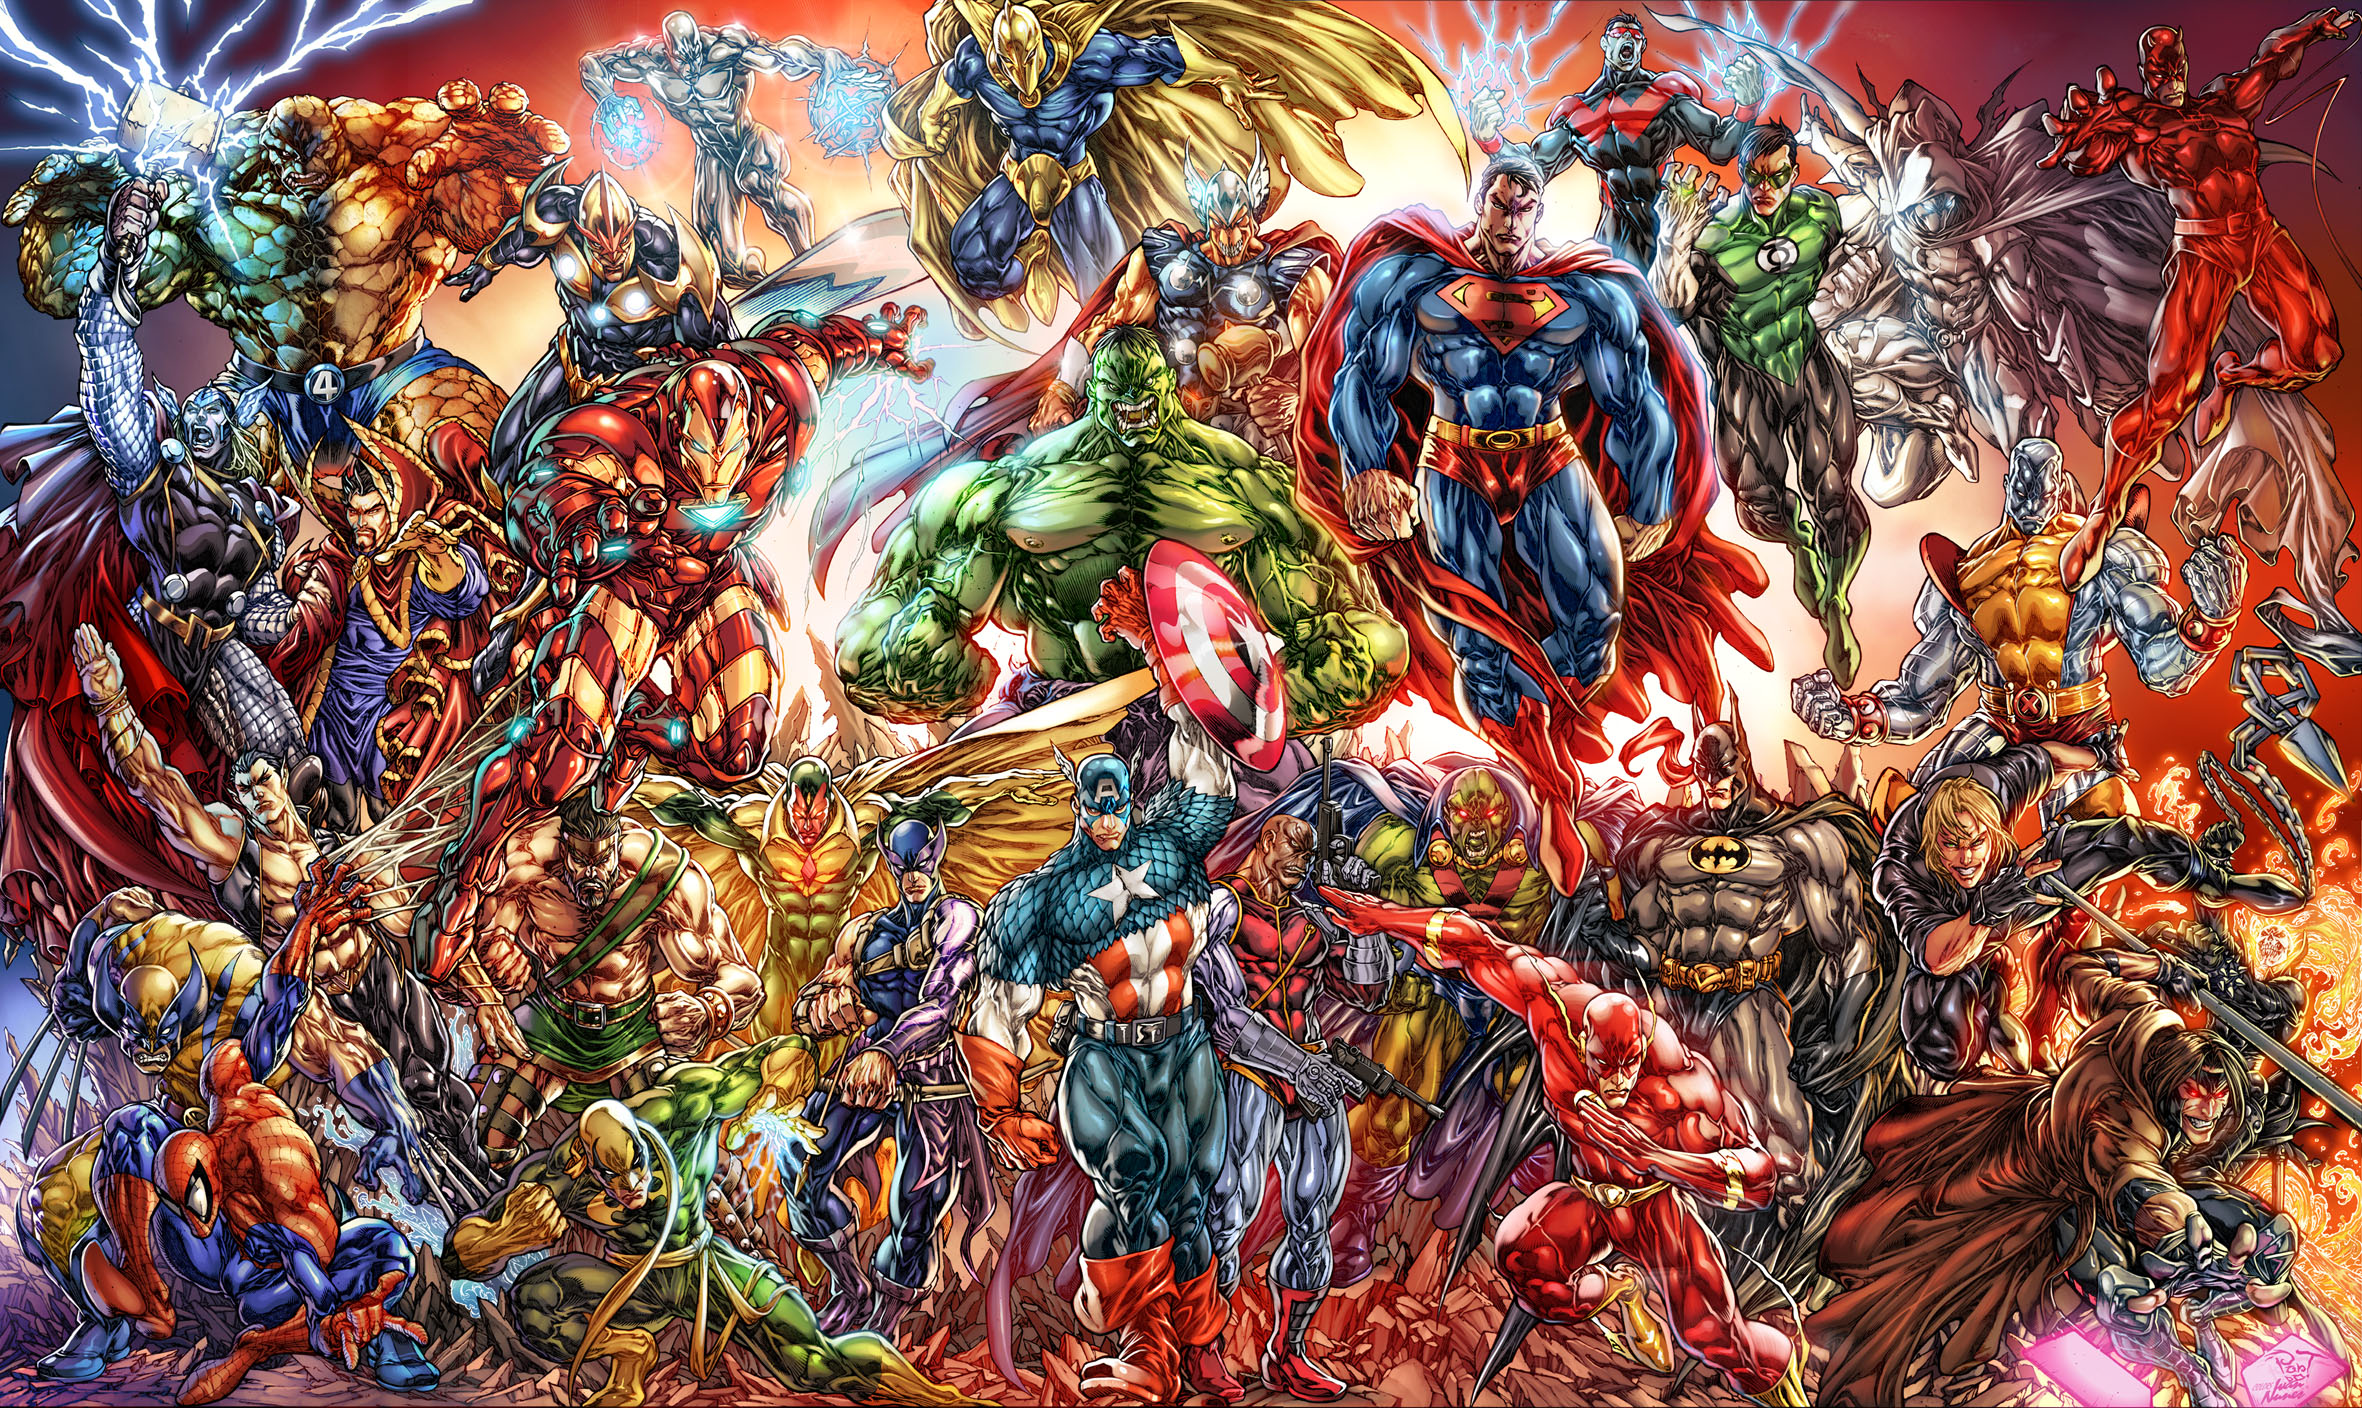 Of Marvel And DC Characters Computer Wallpapers Desktop Backgrounds 2362x1408